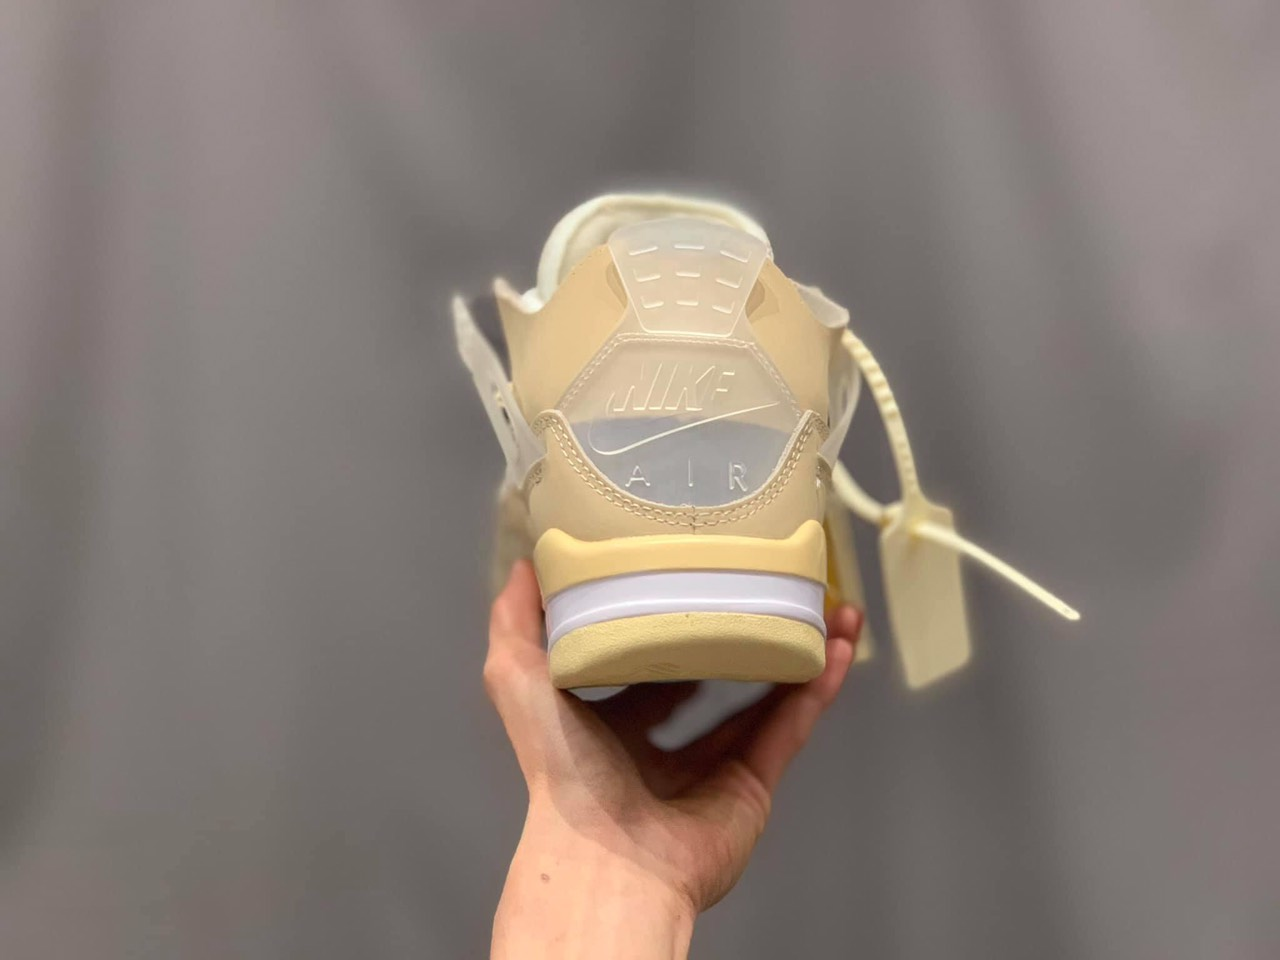 Jordan 4 Retro Off-White Sail Rep 1:1, Jordan 4 Retro Off-White Sail  SF, Jordan 4 Retro Off-White Sail  Super fake, Jordan 4 Retro Off-White Sail  f1, Jordan 4 Retro Off-White Sail  Replica, Jordan 4 Retro Off-White Sail Rep